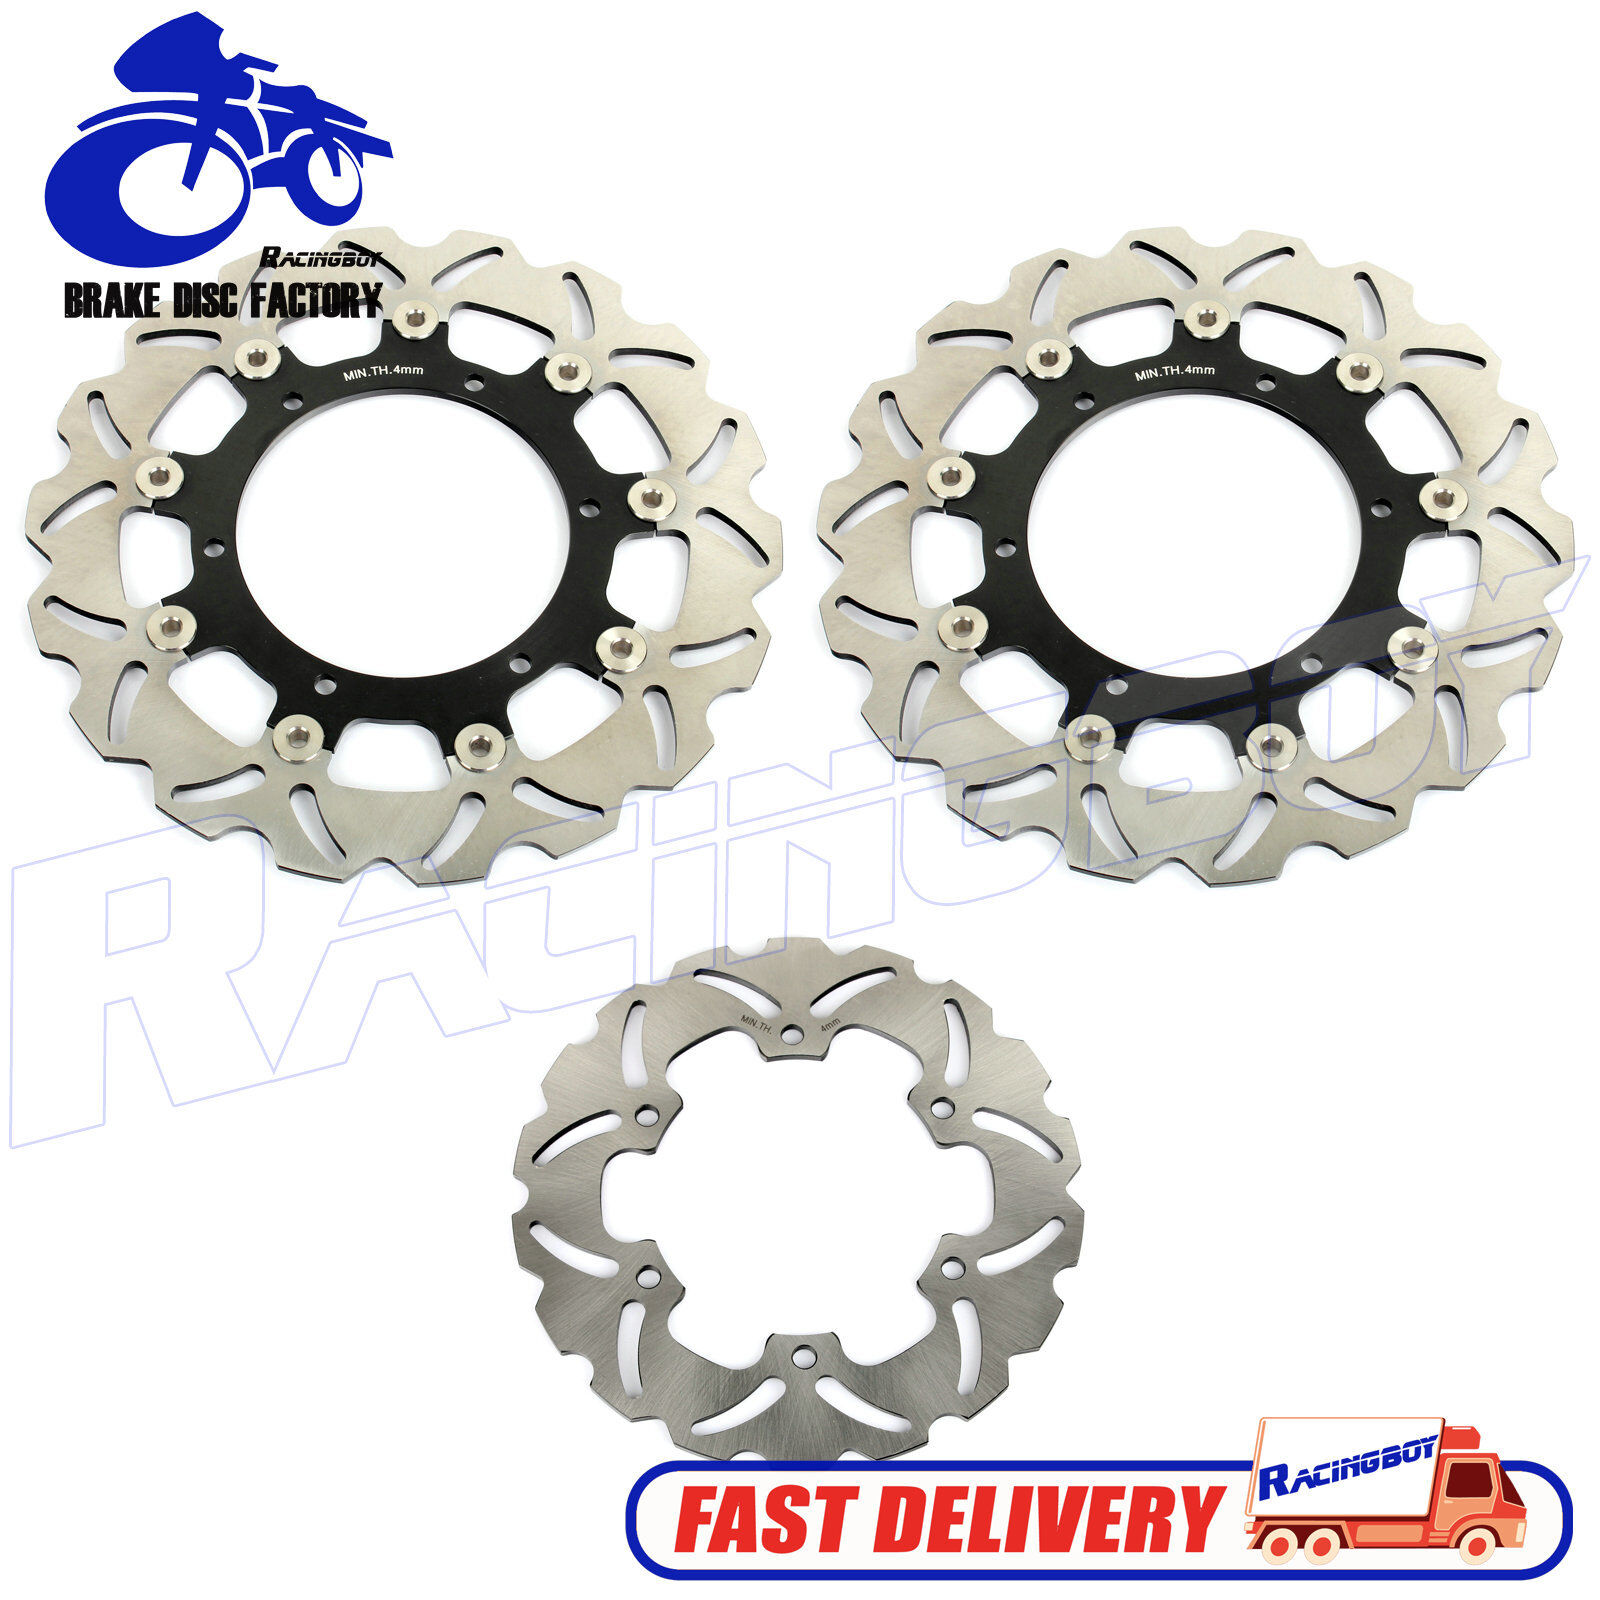 Arashi Front Rear Brake Disc Rotors for YAMAHA YZF R1 1998-2001 Motorcycle Replacement Accessories YZF-R1 1999 2000 Black XJ600S XJ600N